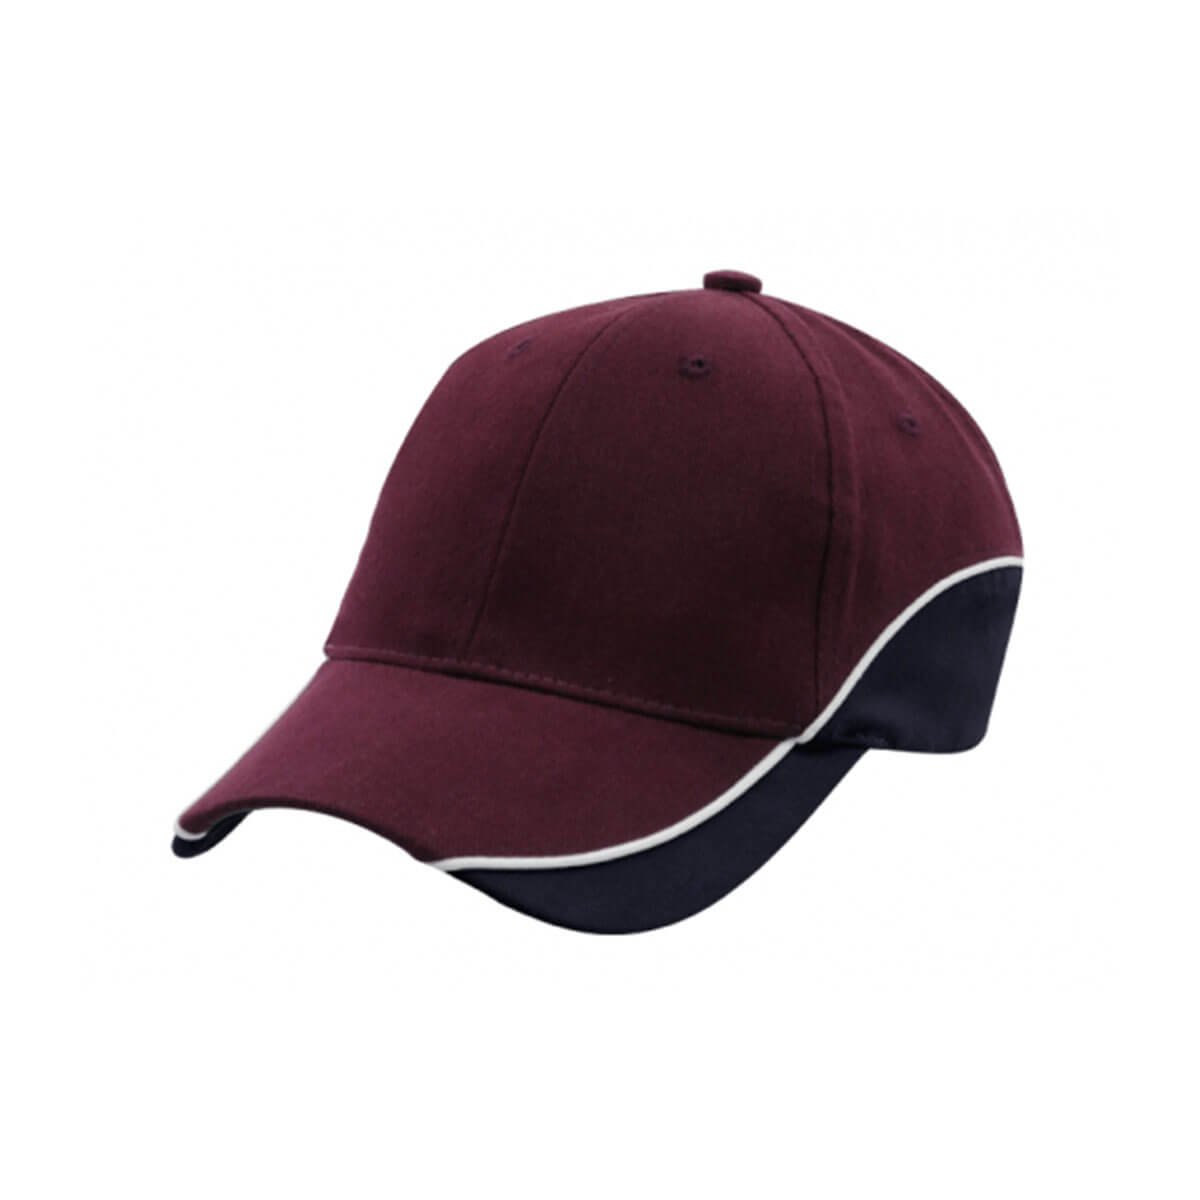 Adventure Cap-Maroon / White / Navy